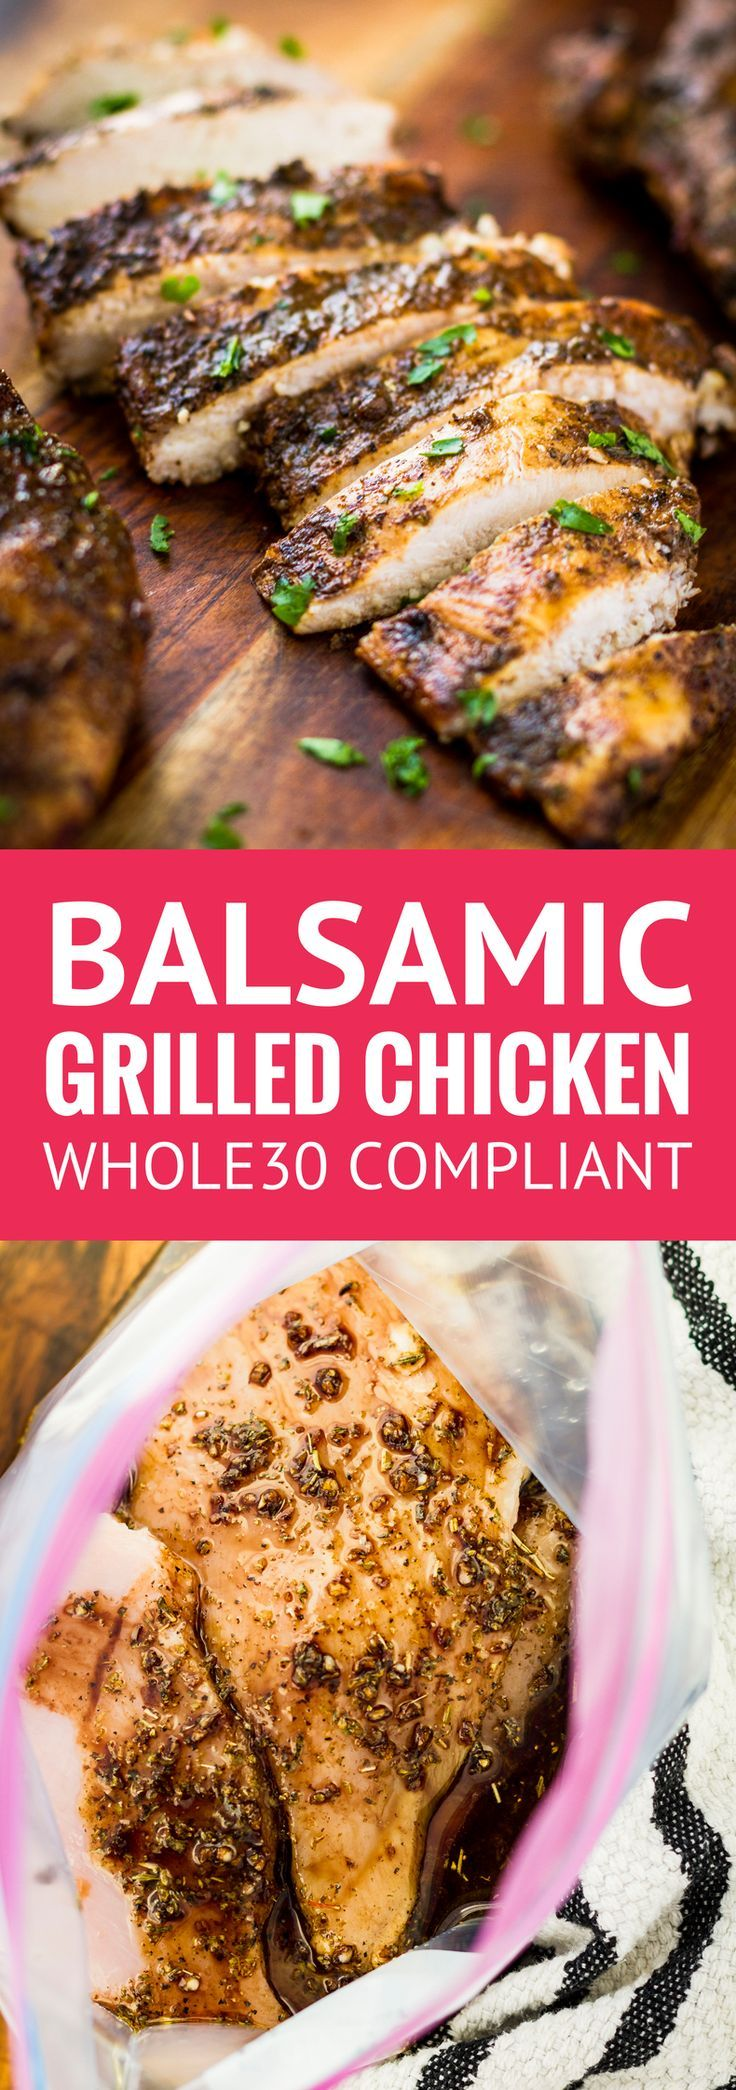 Juicy Balsamic Grilled Chicken -- this balsamic grilled chicken recipe makes the most juicy and succulent boneless skinless breasts EVER with just 4 ingredients and 30 minutes of marinating time! And it's Whole30 compliant... | balsamic grilled chicken marinade | healthy balsamic grilled chicken | whole30 balsamic grilled chicken | whole 30 chicken marinade | whole30 grilled chicken | find the recipe on unsophisticook.com #whole30 #whole30recipes #mealprep #chickenrecipes